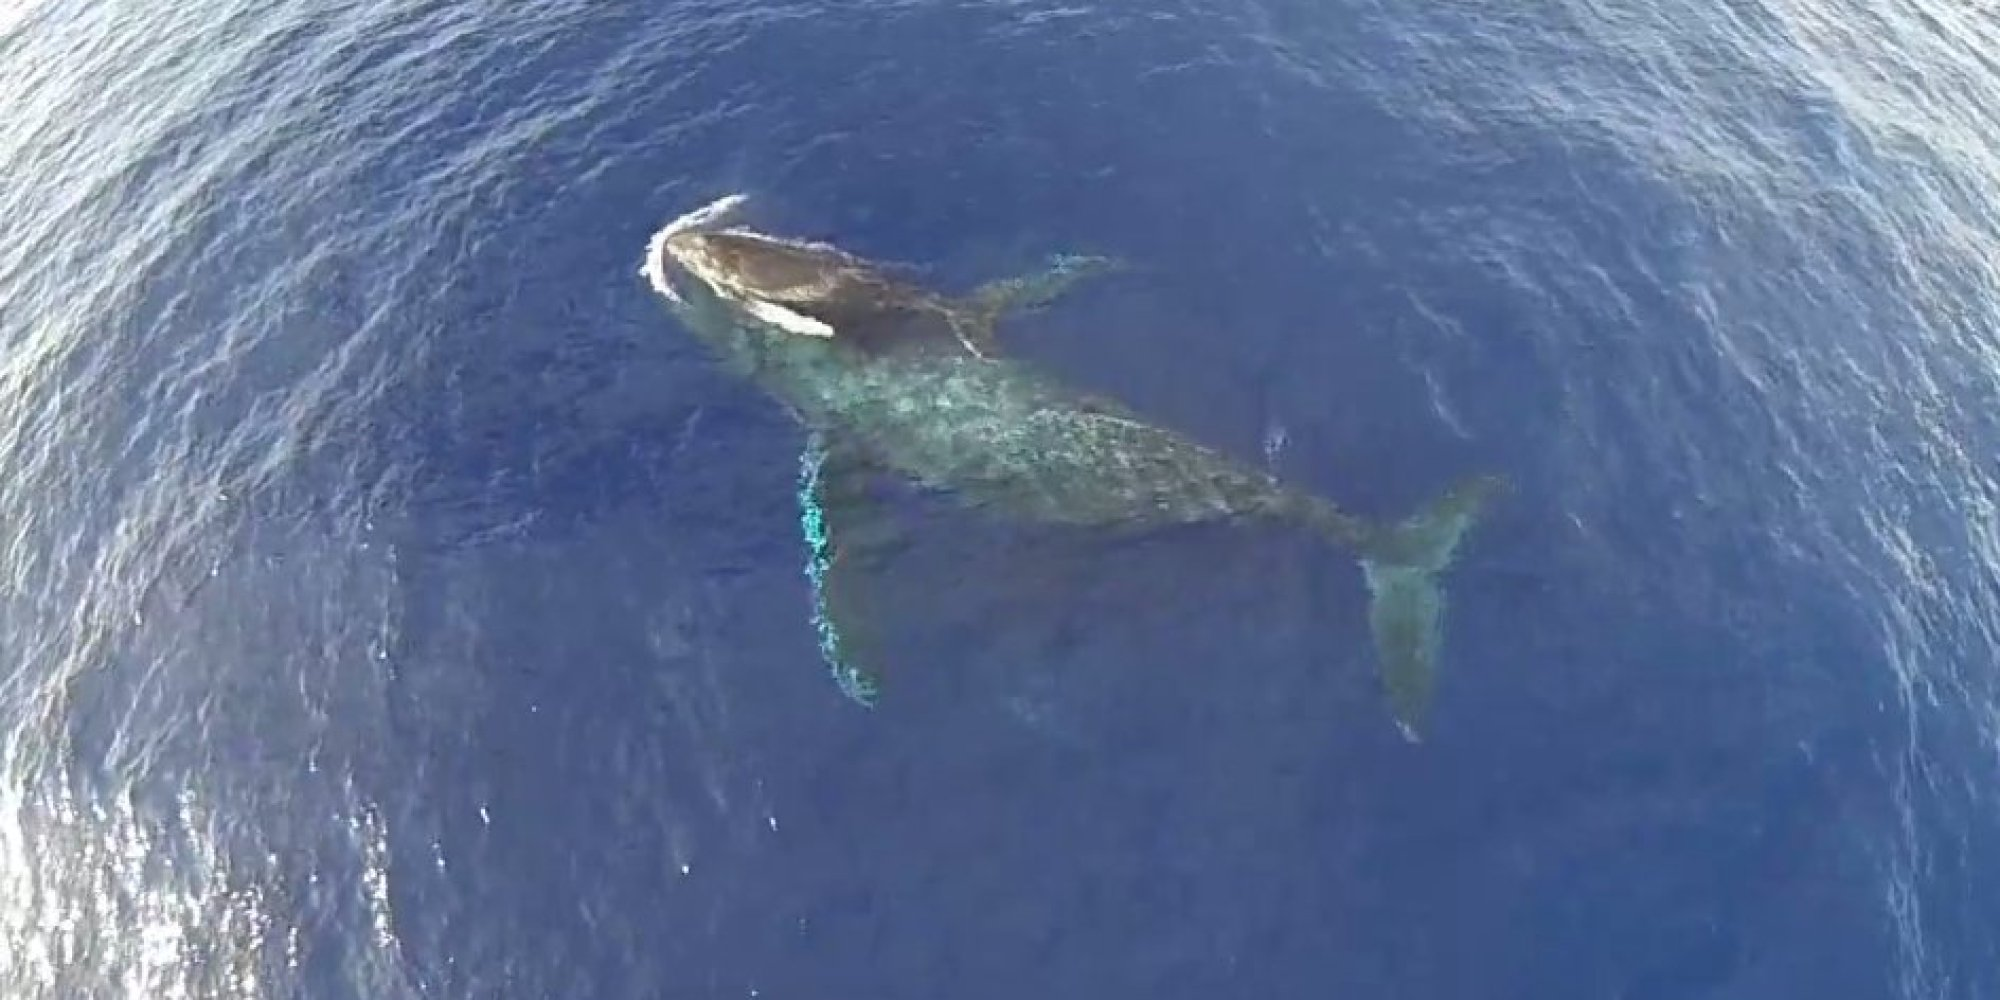 Baby humpback whales - photo#22